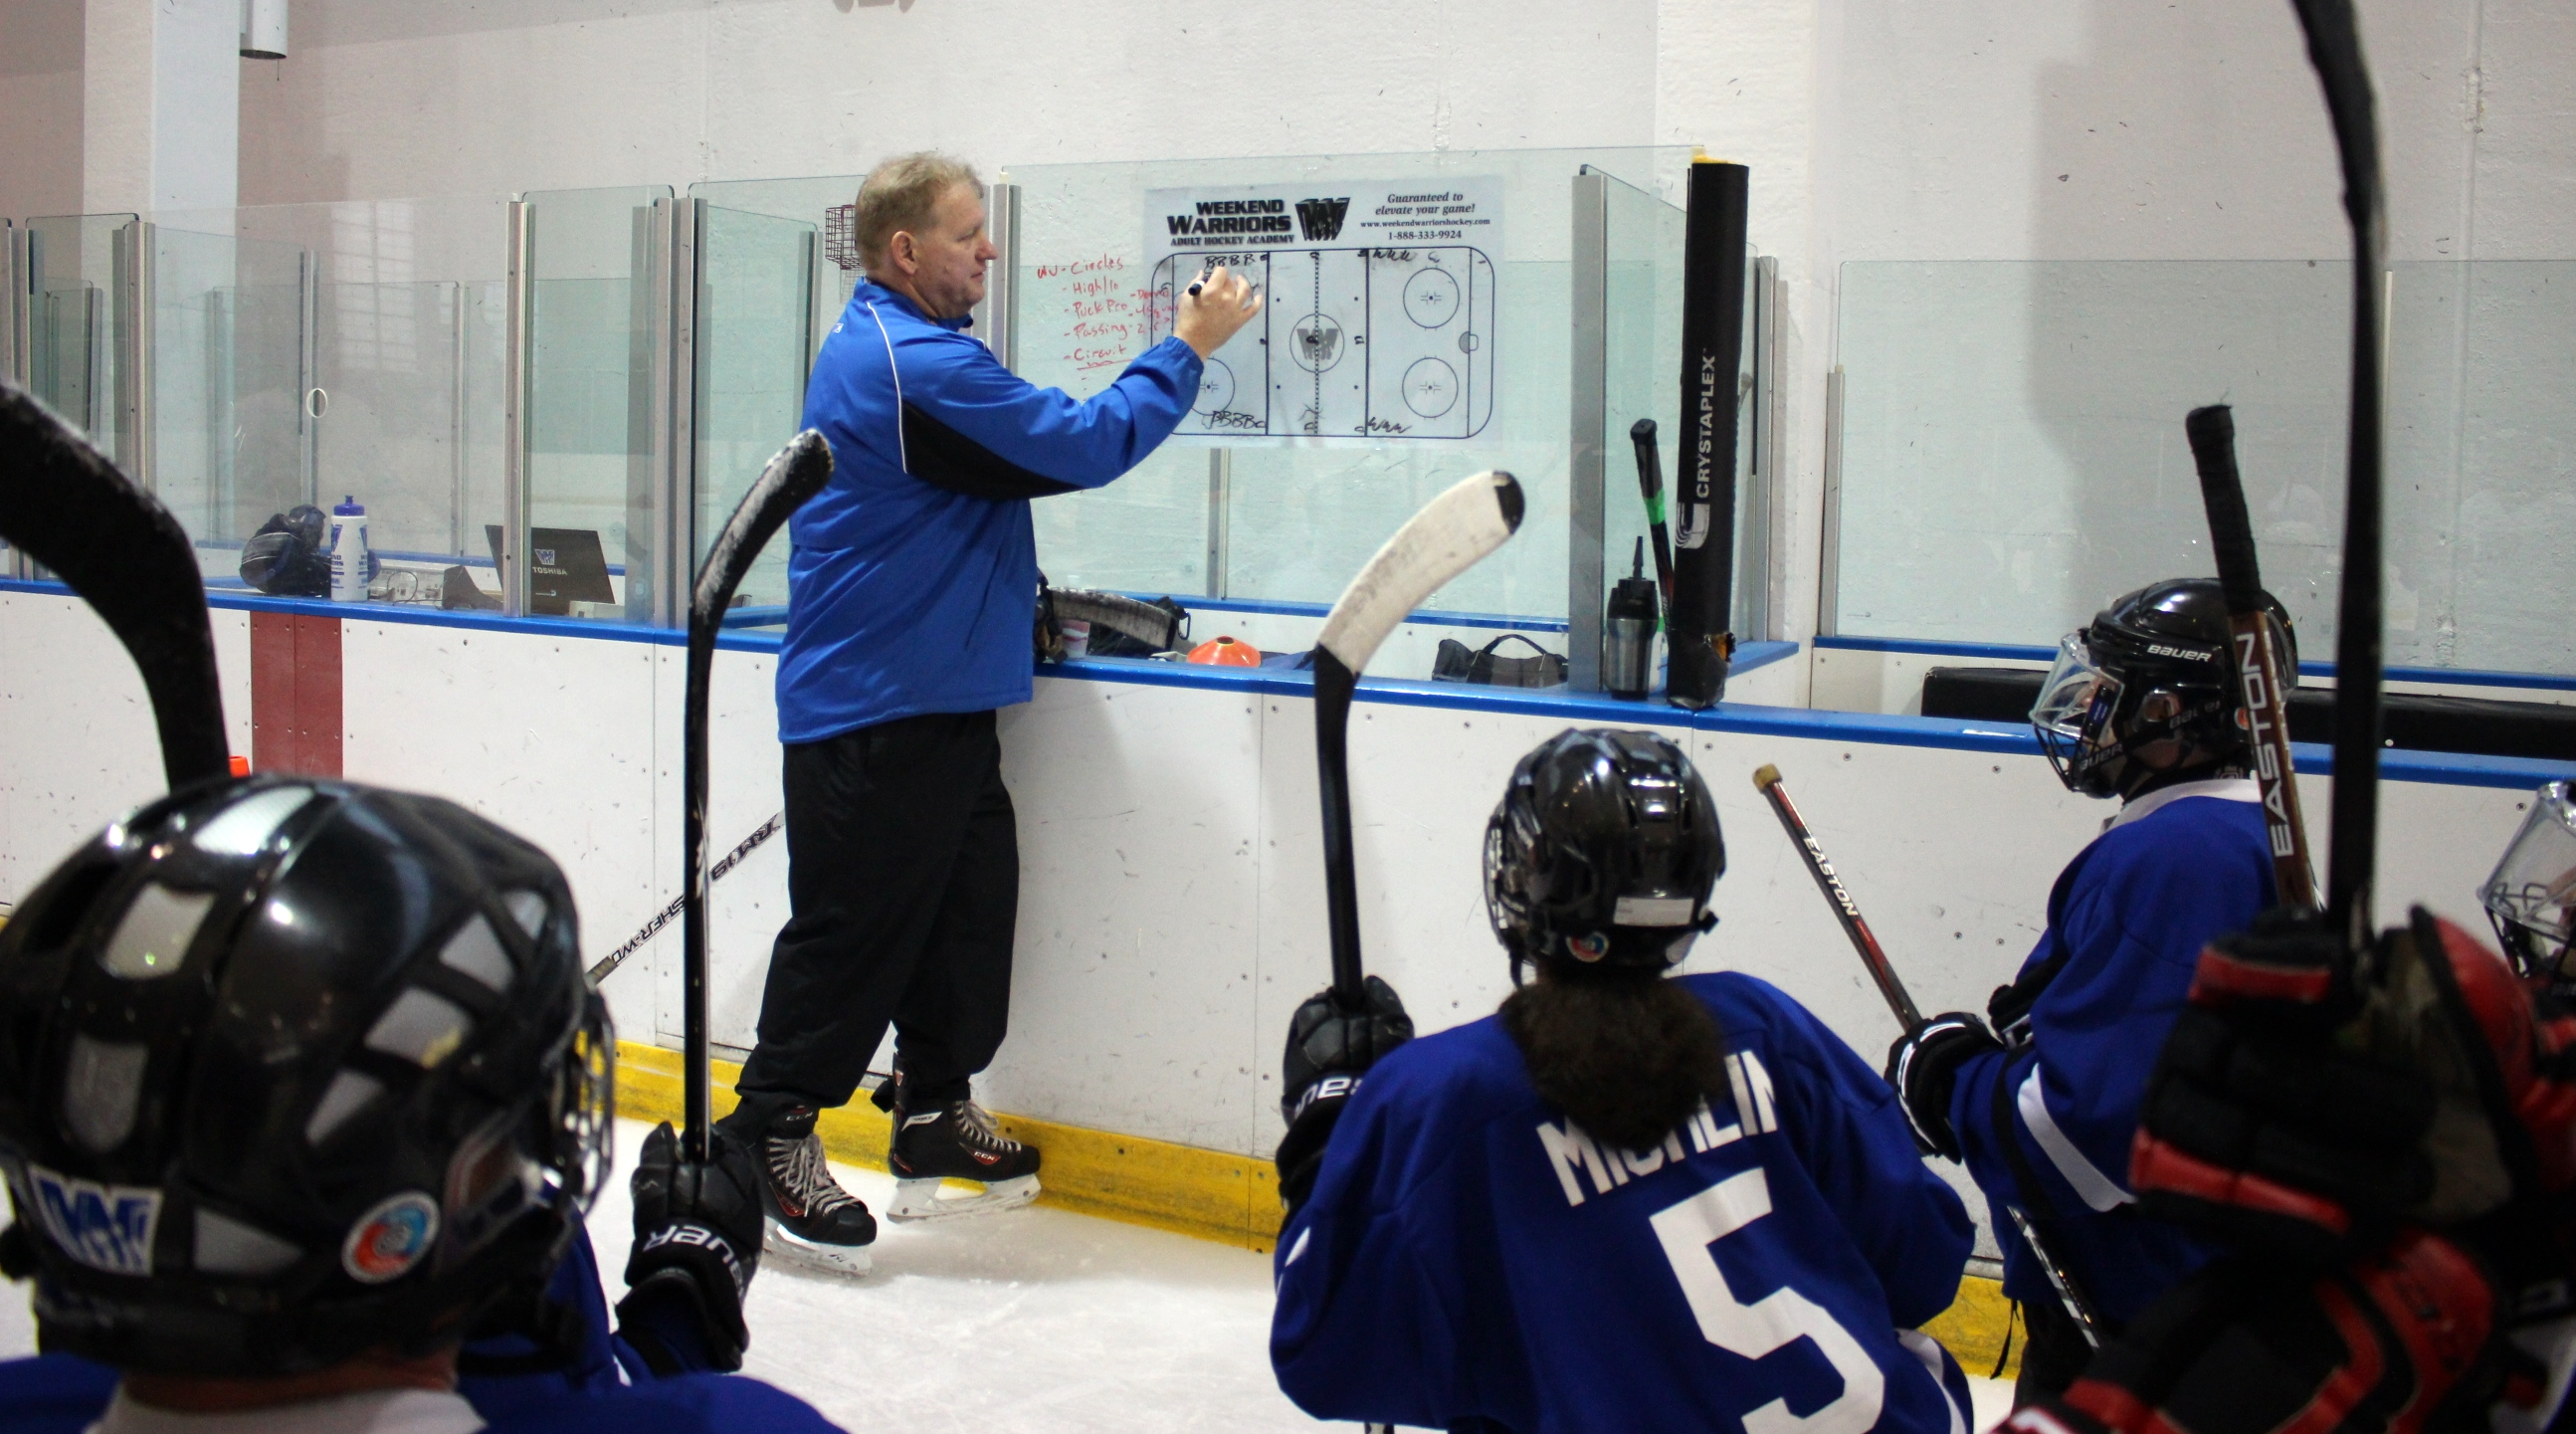 Coach Rob draws up ther next drill